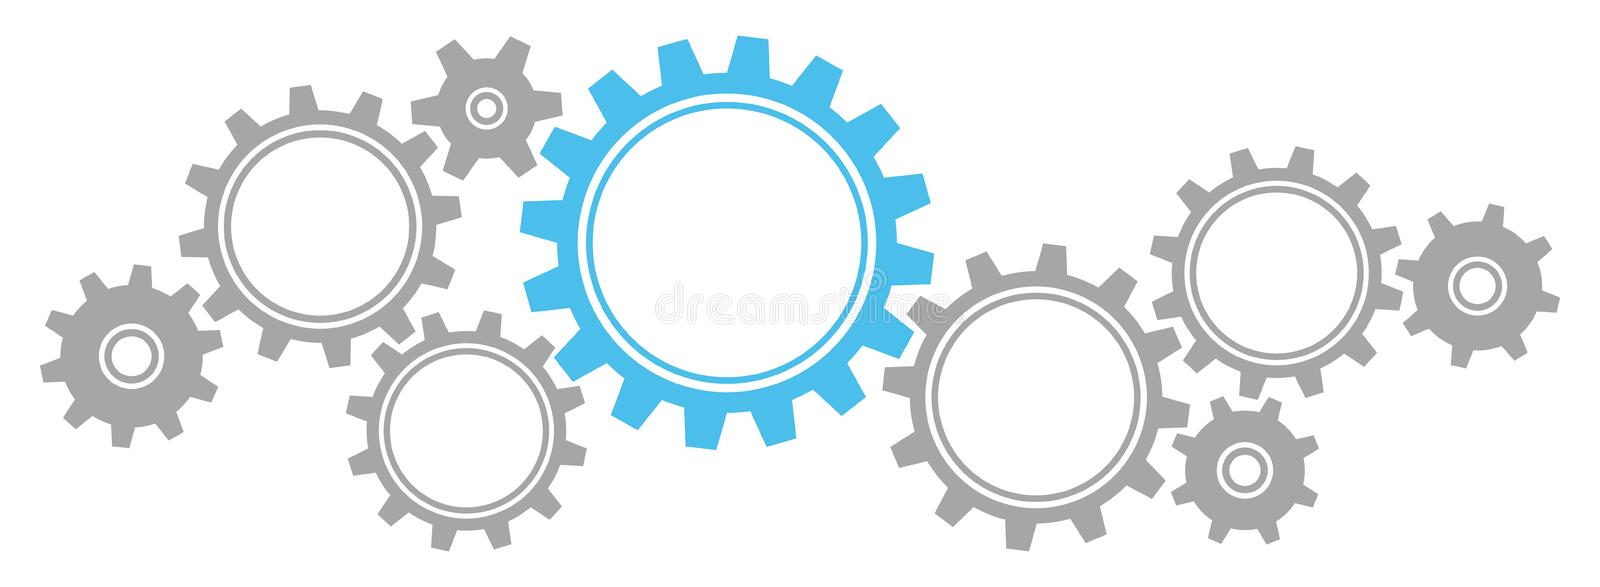 Gears Border Graphics Grey And Blue. Nine Gears In Color Grey And Blue Sticking Into Each Other As A Group royalty free illustration